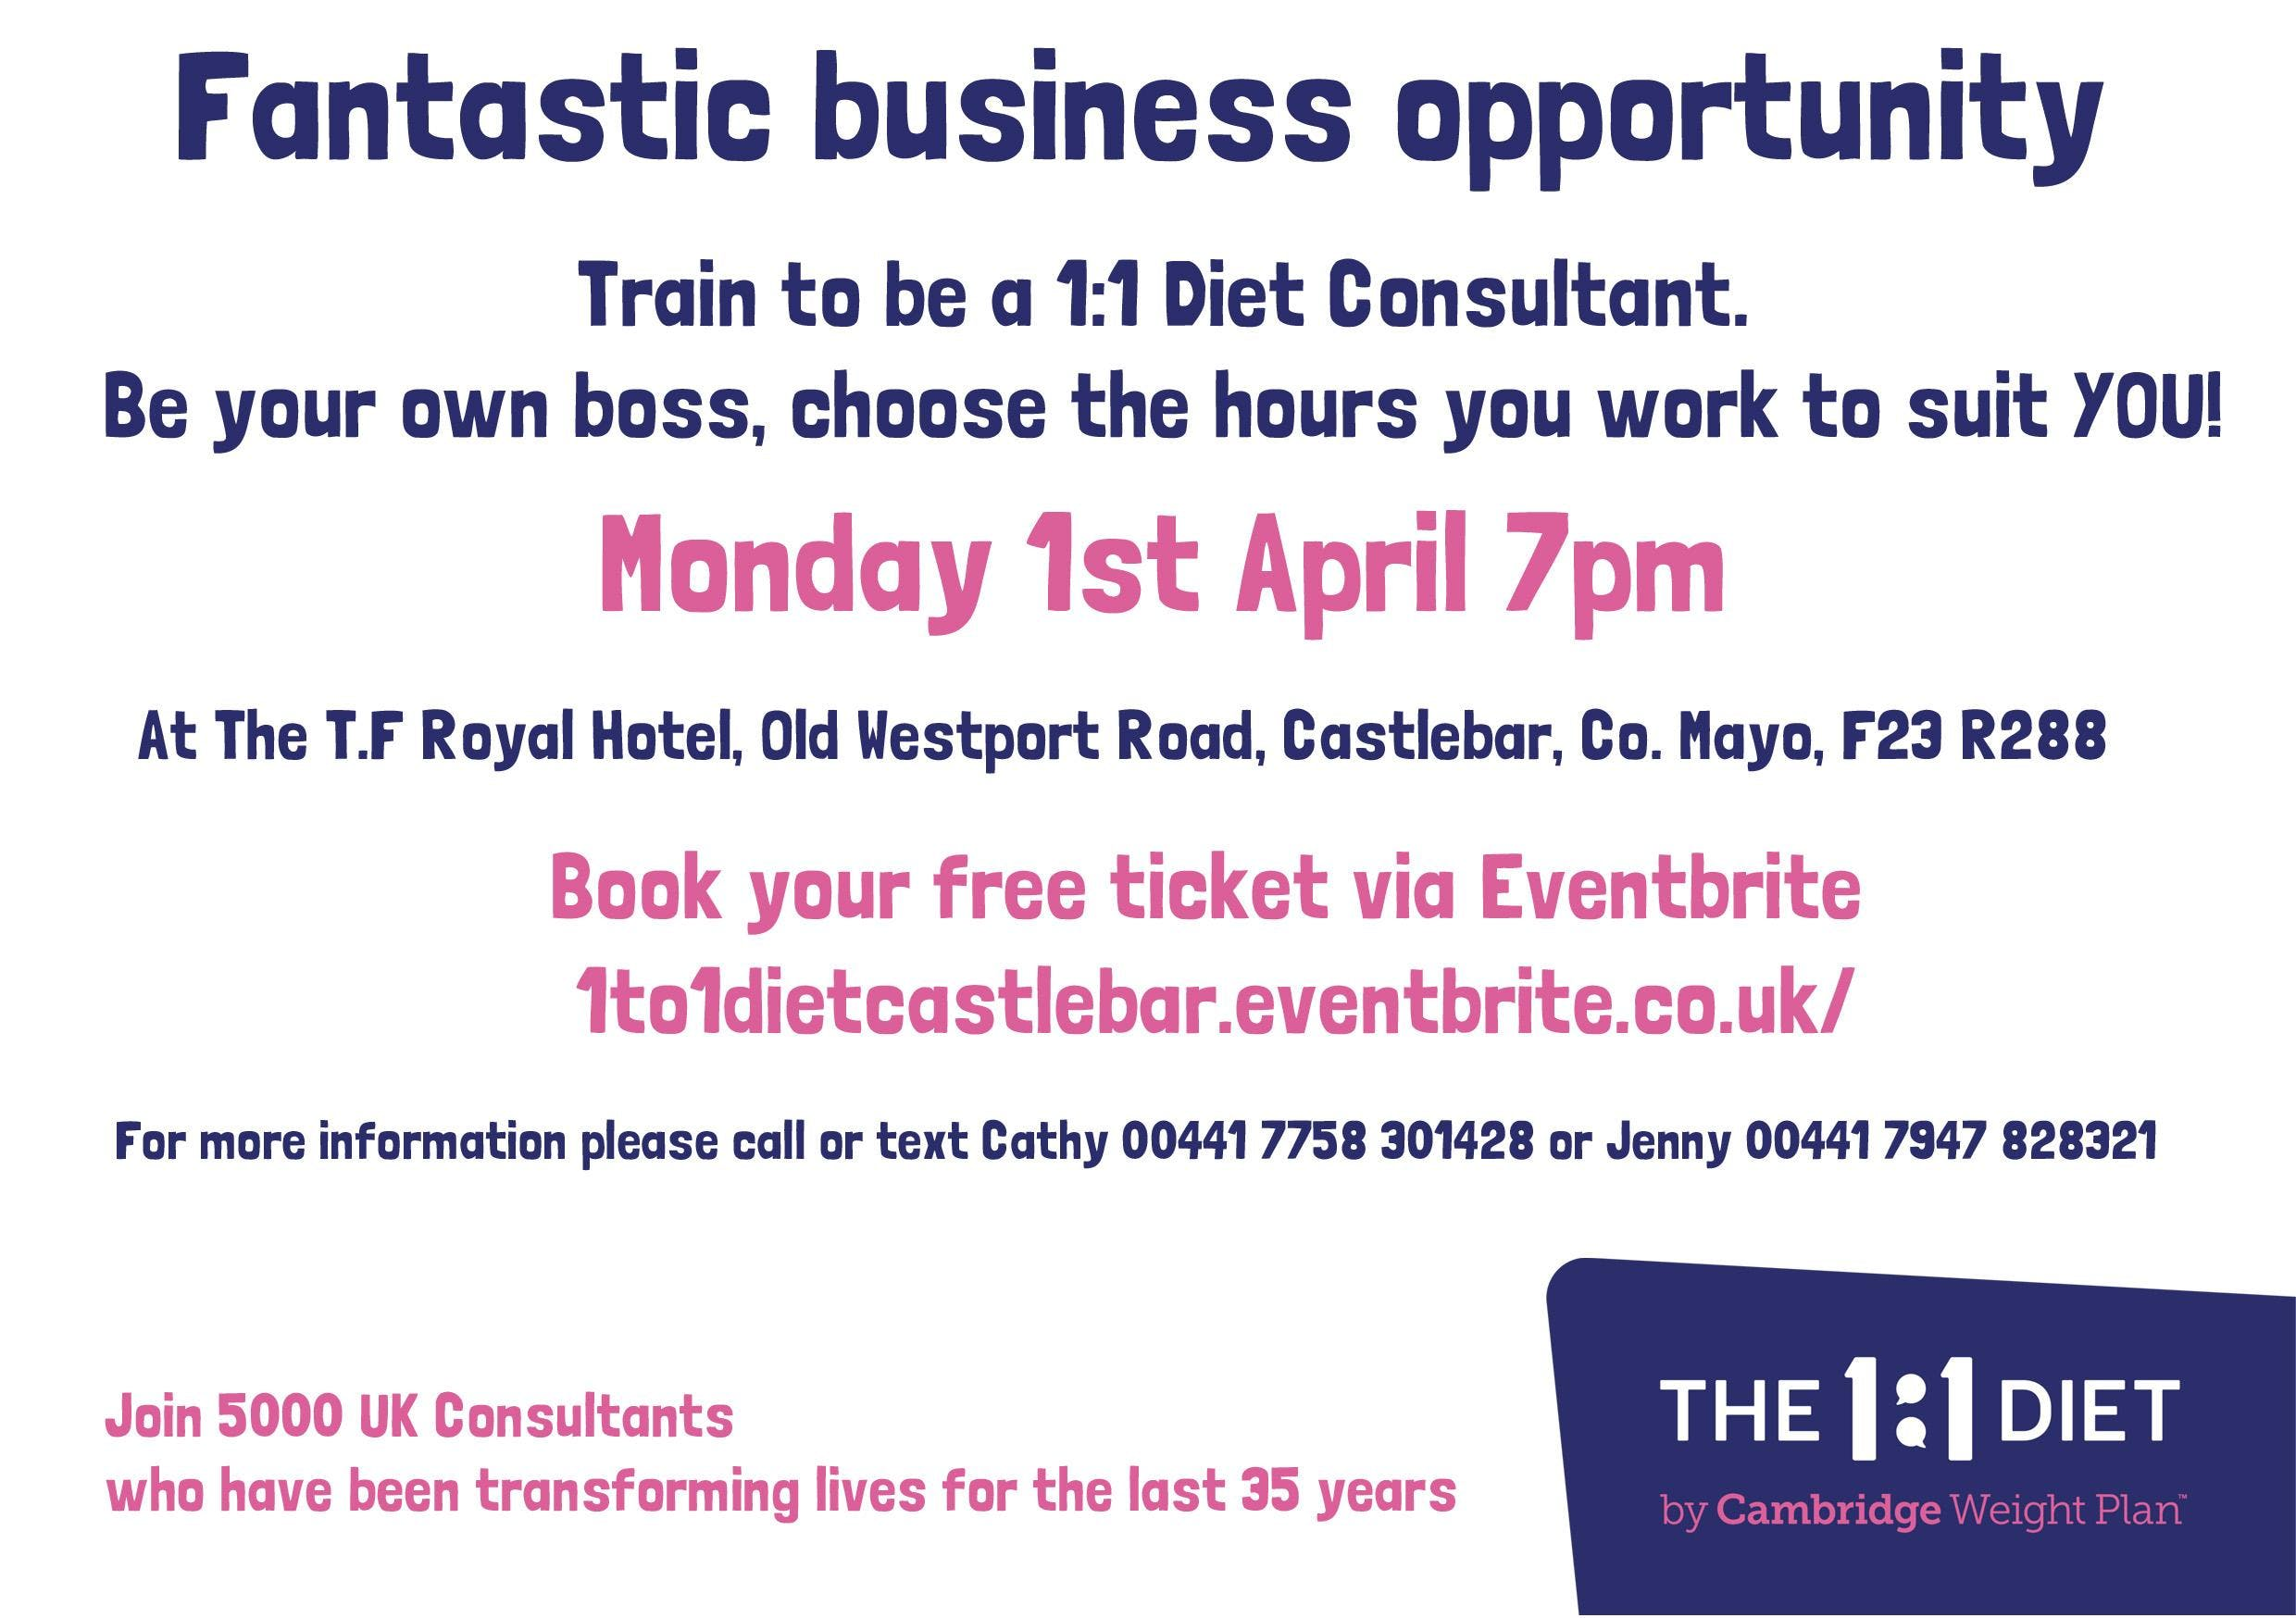 Business Opportunity Meeting - 1:1 Diet by Cambridge Weight Plan - Castlebar